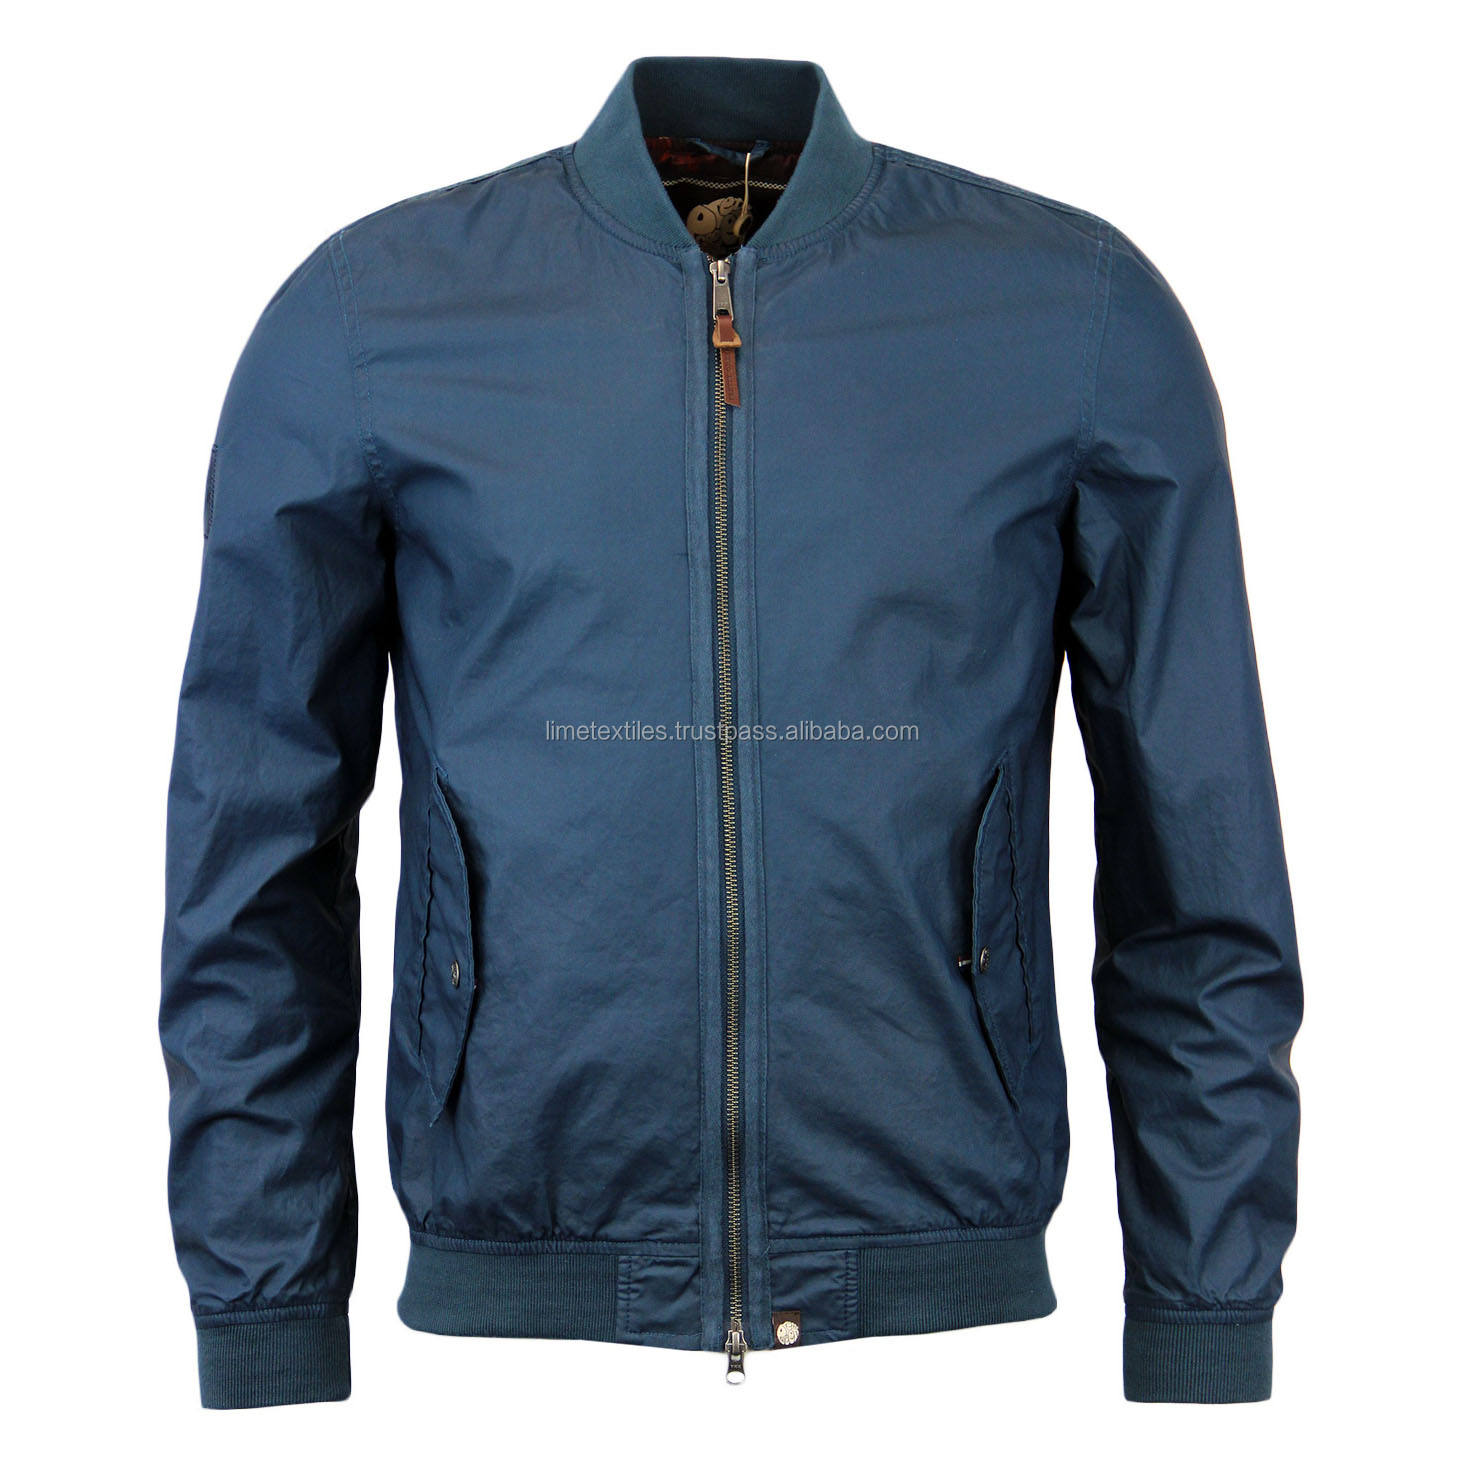 Bomber Jacket Wholesale Quilted Nylon Bomber Jacket For Men / High Quality Lightweight zipper Jacket Bomber